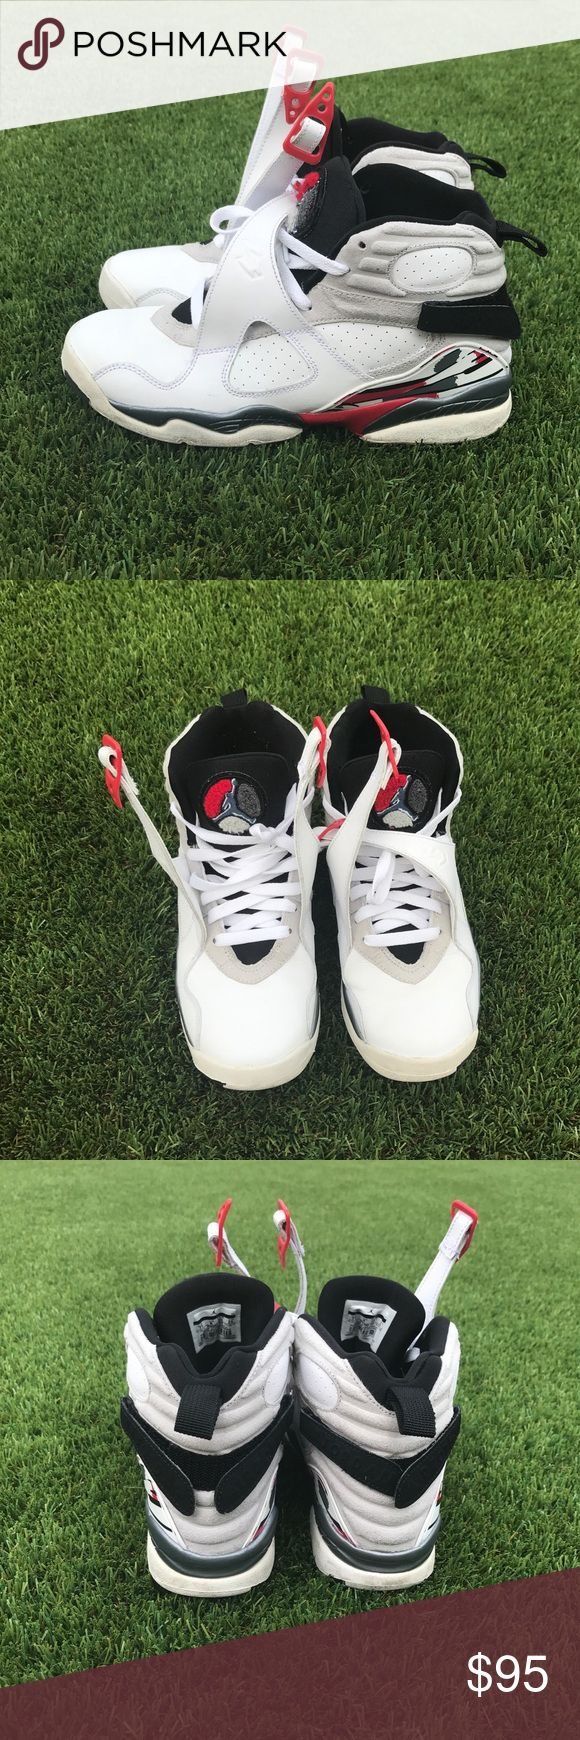 Retro 8 Bugs Bunny Air Jordan's PreOwned White, Red, Black & Grey Retro 8 Bugs Bunny Air Jordan's. These are youth size 7 but can fit women size 8.5 or 9. Good condition. Comes with box. Please ask questions 🌸🌸 Air Jordan Shoes Sneakers